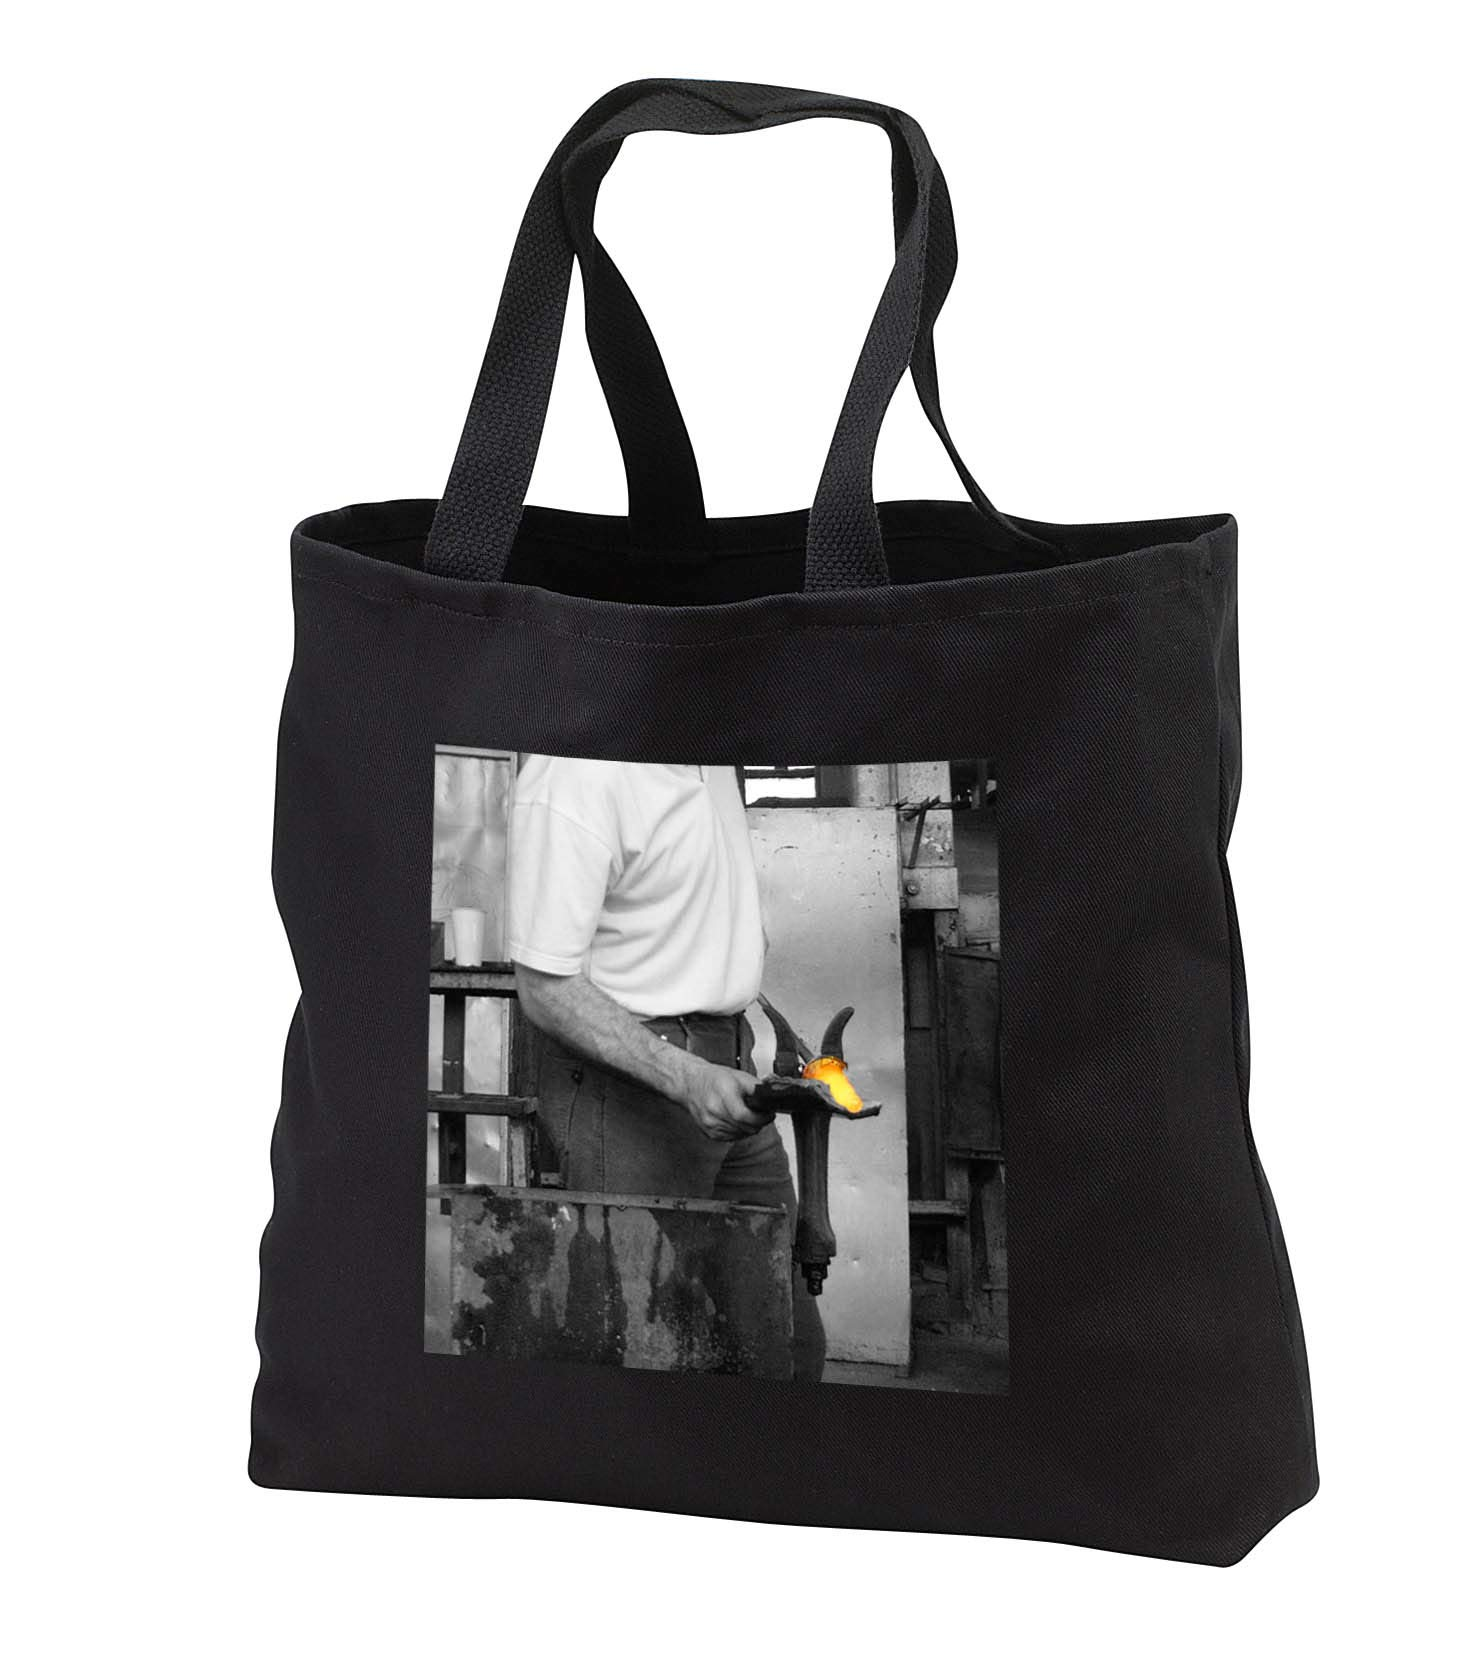 Jos Fauxtographee- Unsaturated with Glow Glass - A man in Ireland blowing some glass with the hot part gold - Tote Bags - Black Tote Bag 14w x 14h x 3d (tb_293691_1)